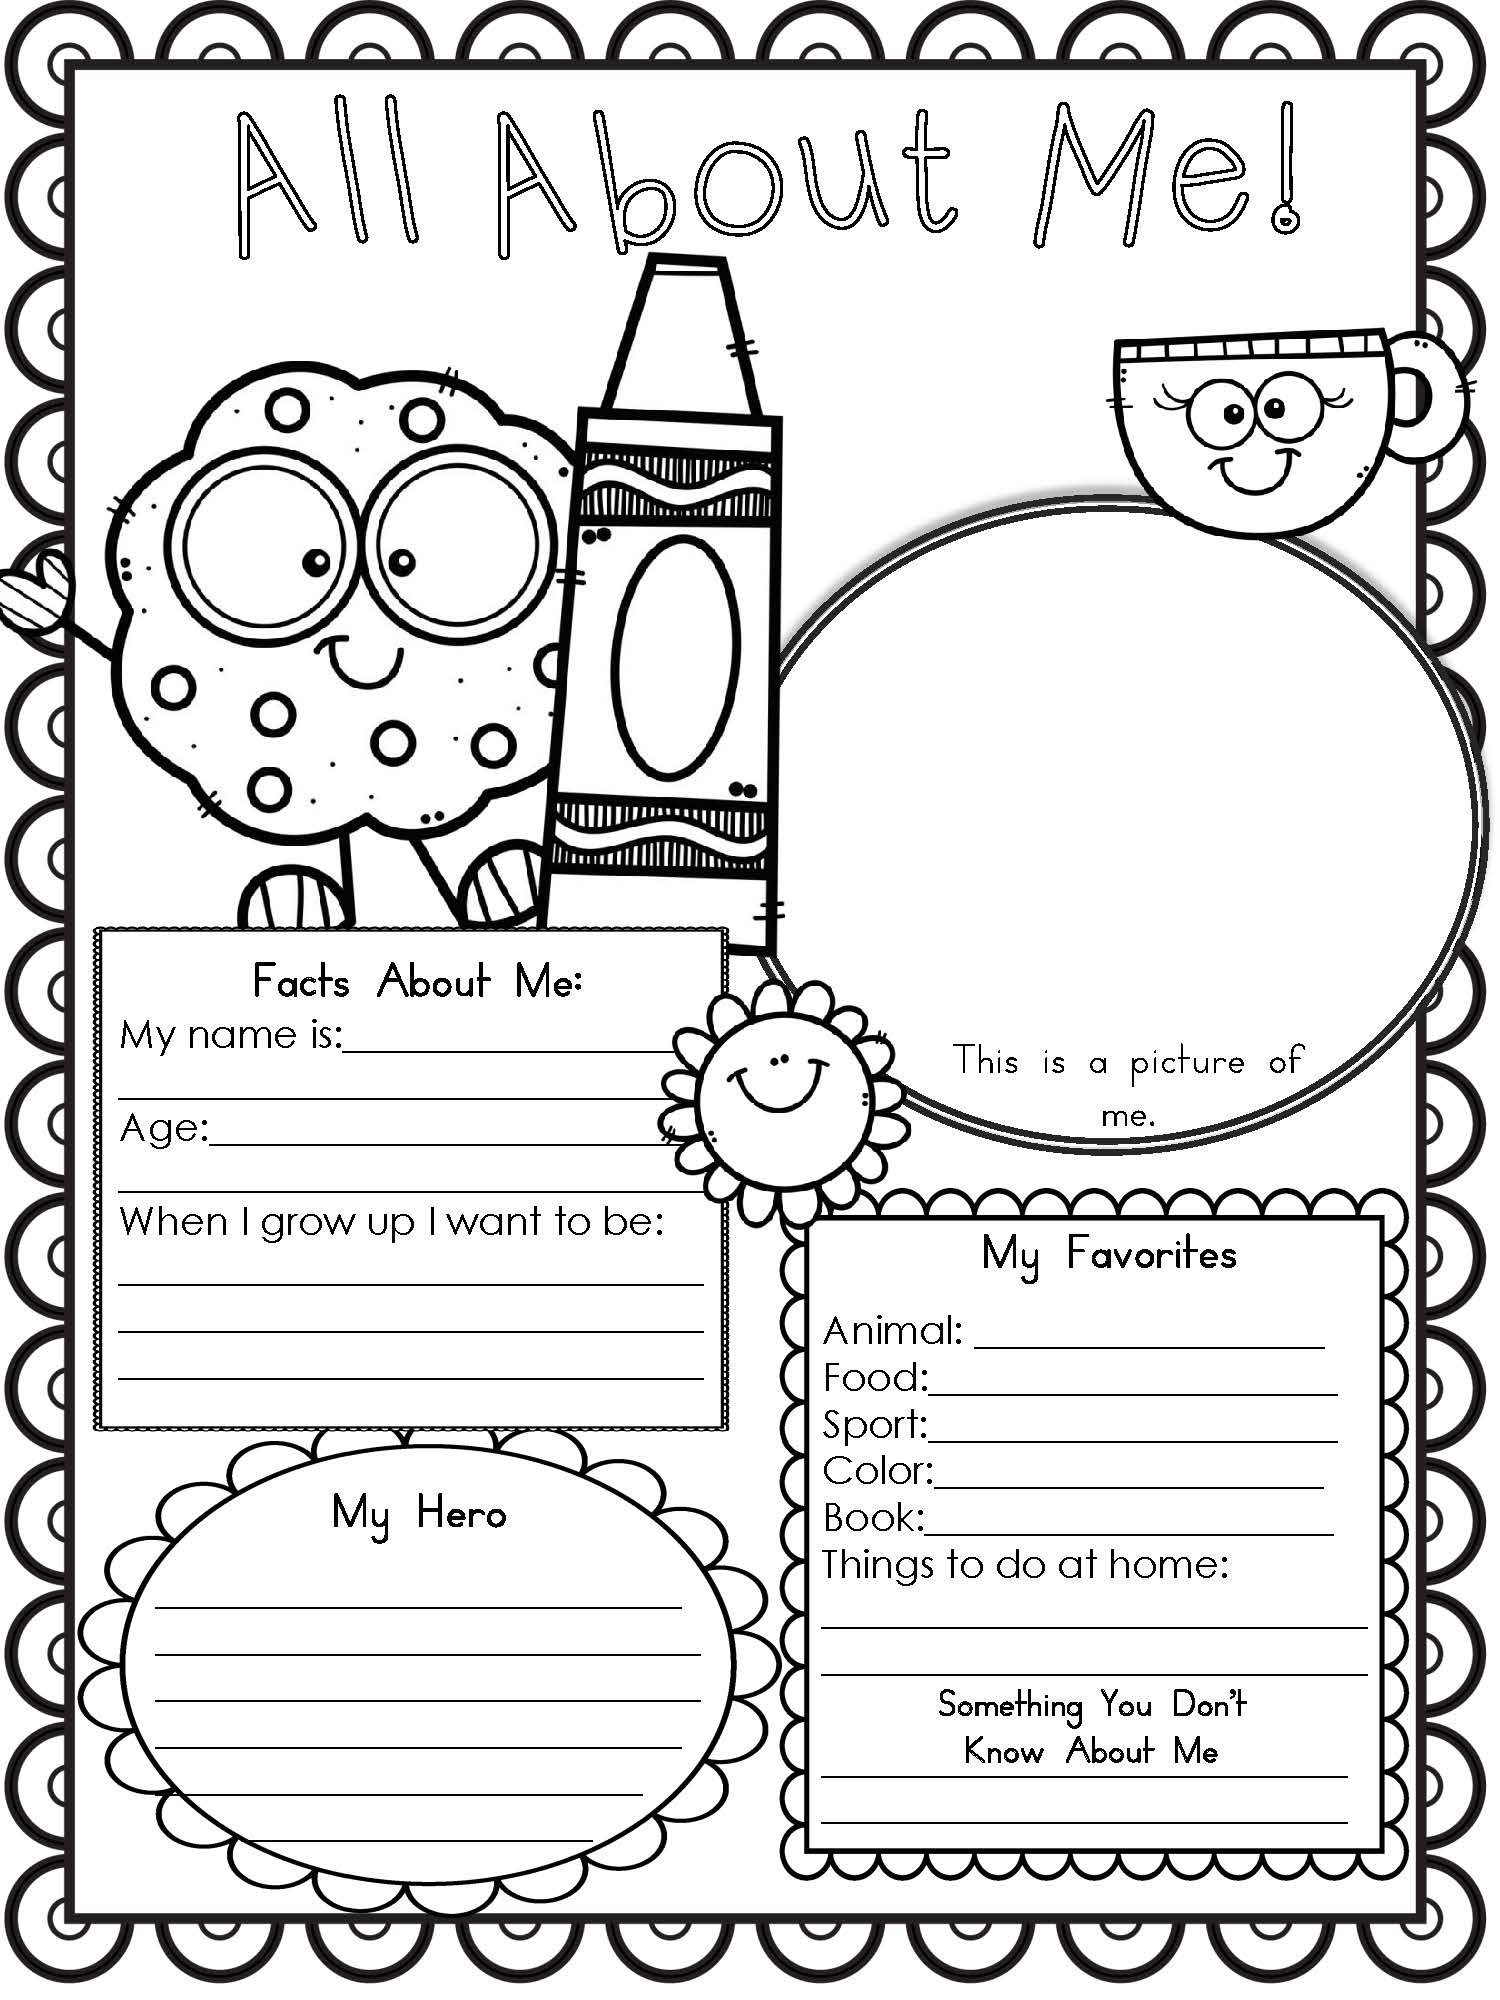 All About Me Printable Page 1